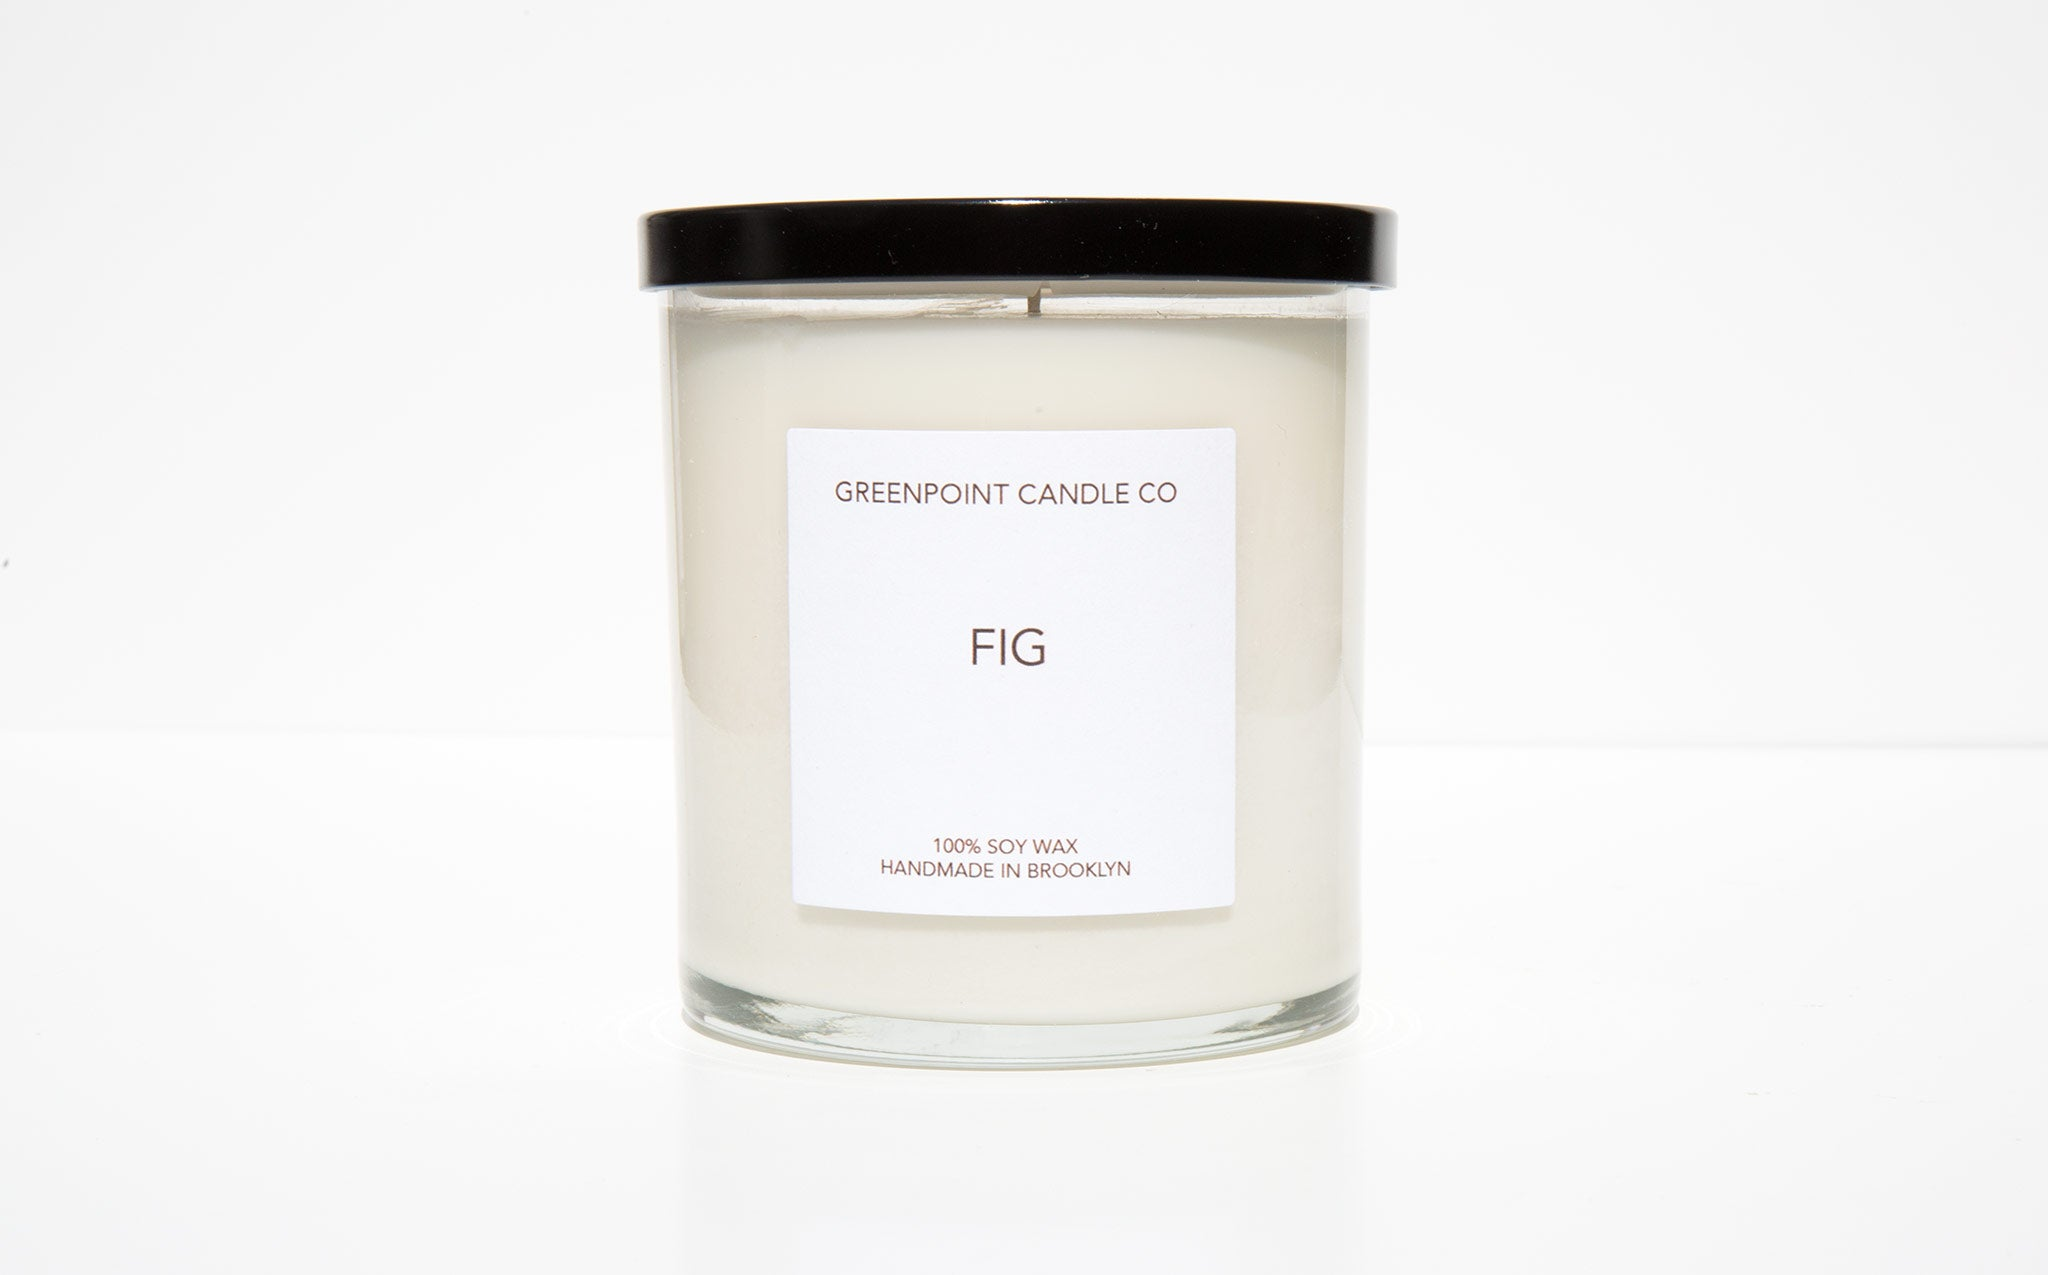 Greenpoint Candle Company Fig